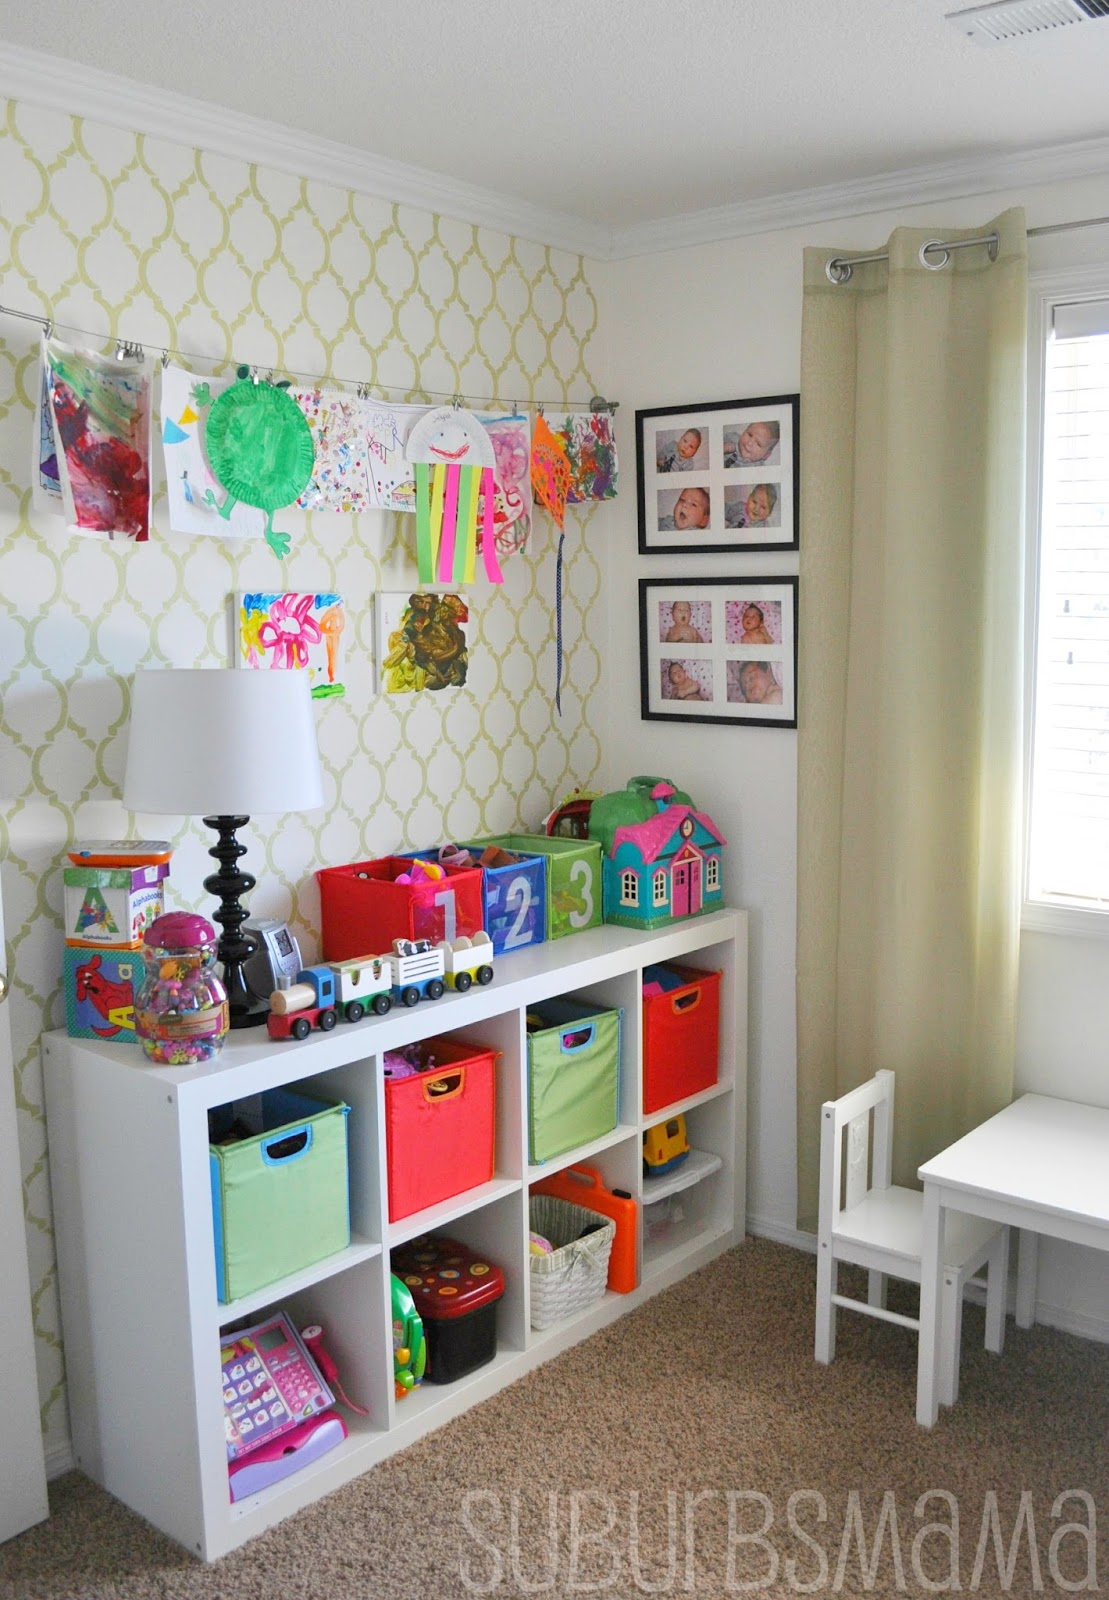 Toddler bedroom organization ideas for Bedroom organization ideas